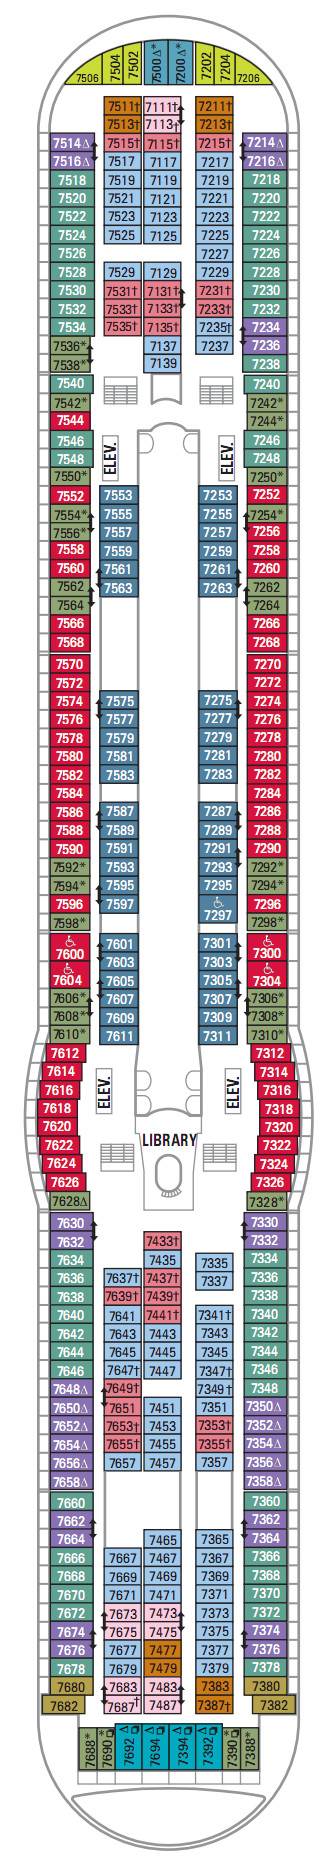 Navigator Of The Seas Deck 7 layout